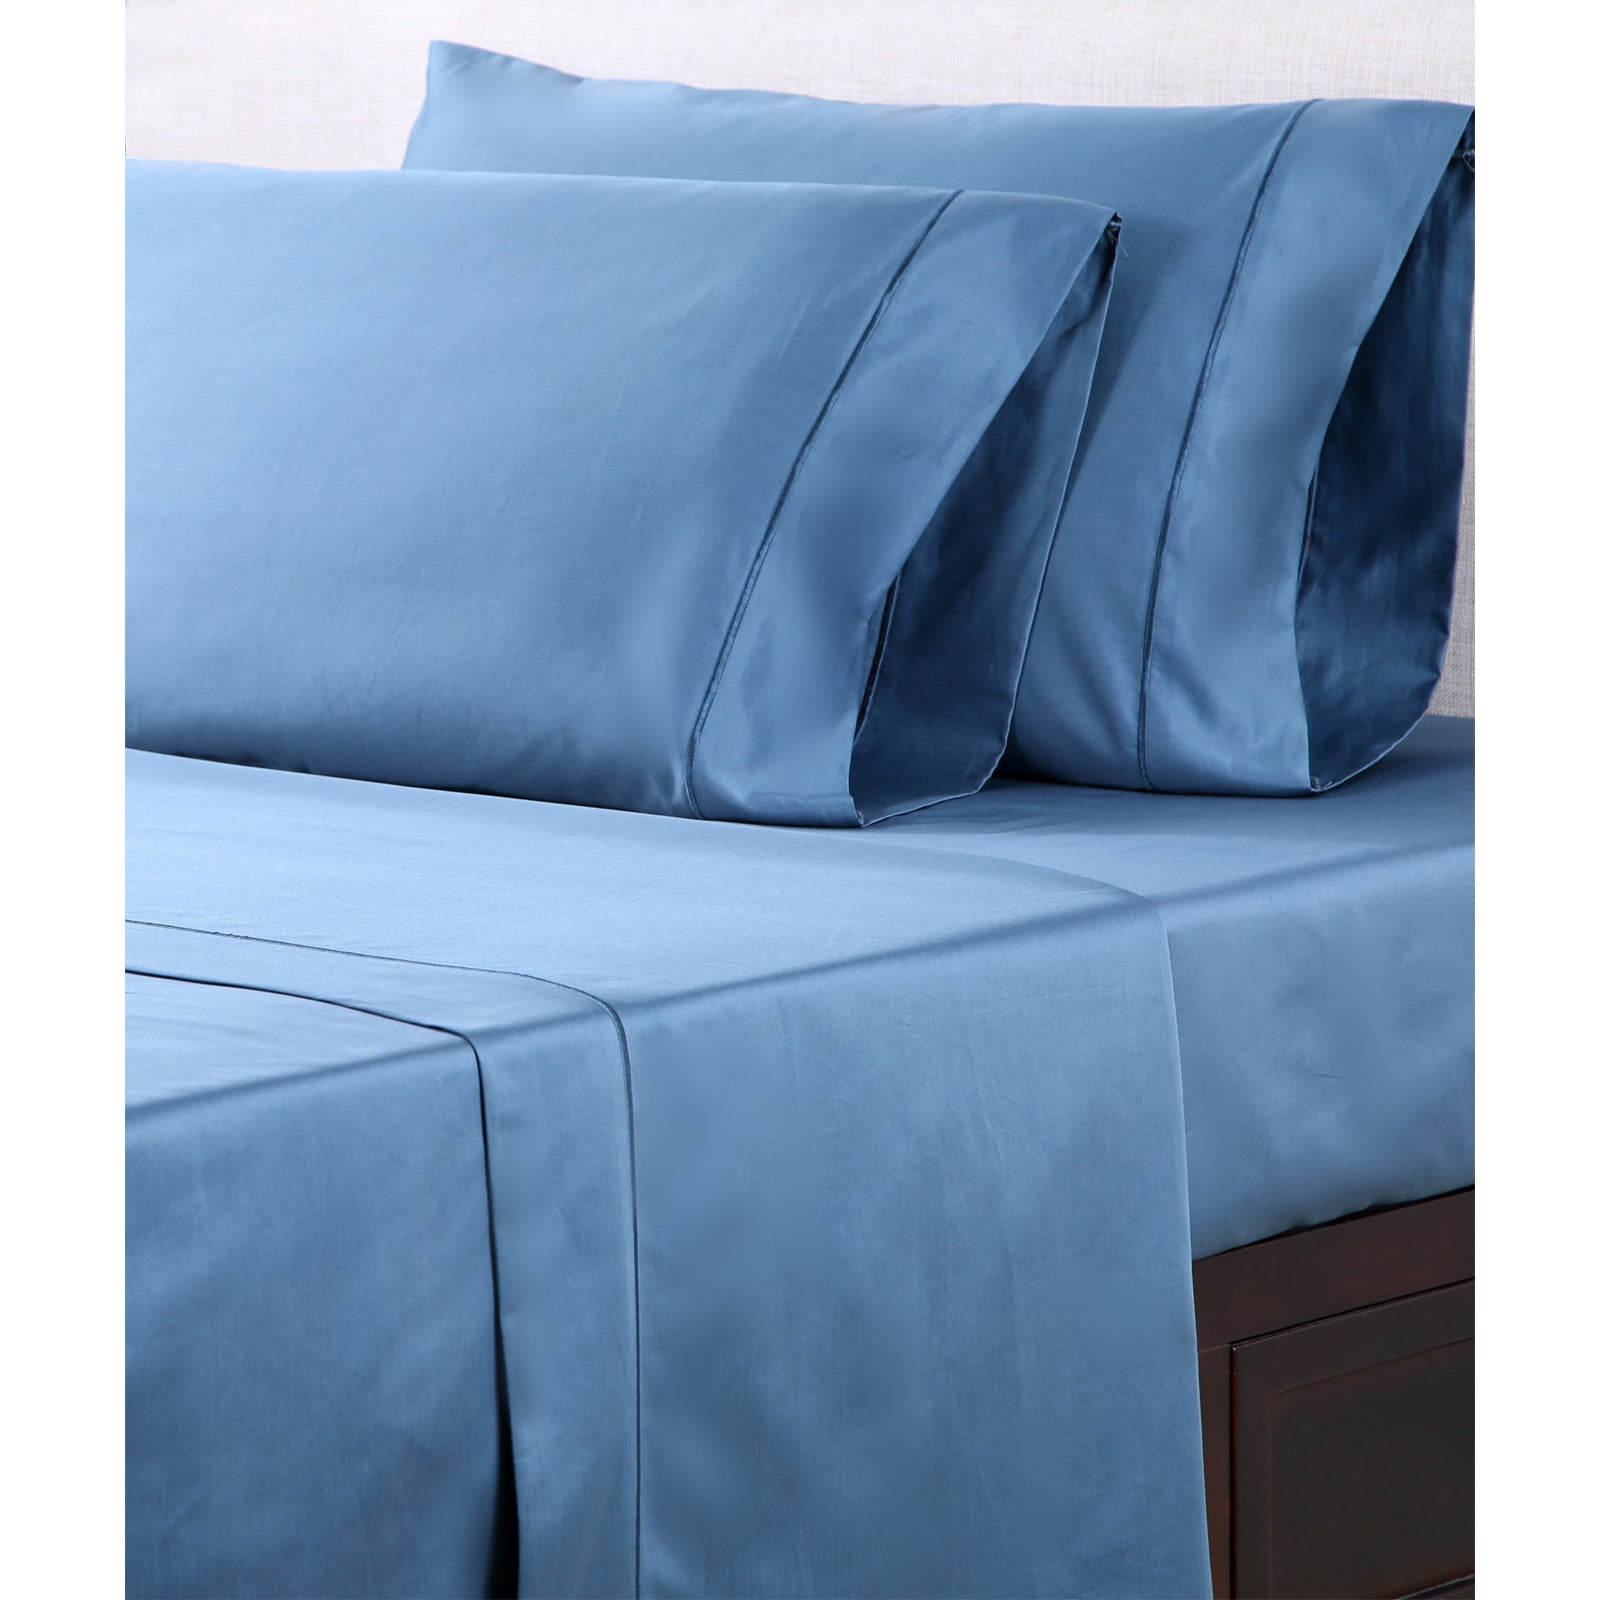 Copper Grove  Snapdragon 1000 Thread Count Deep Pocket Sheet Set